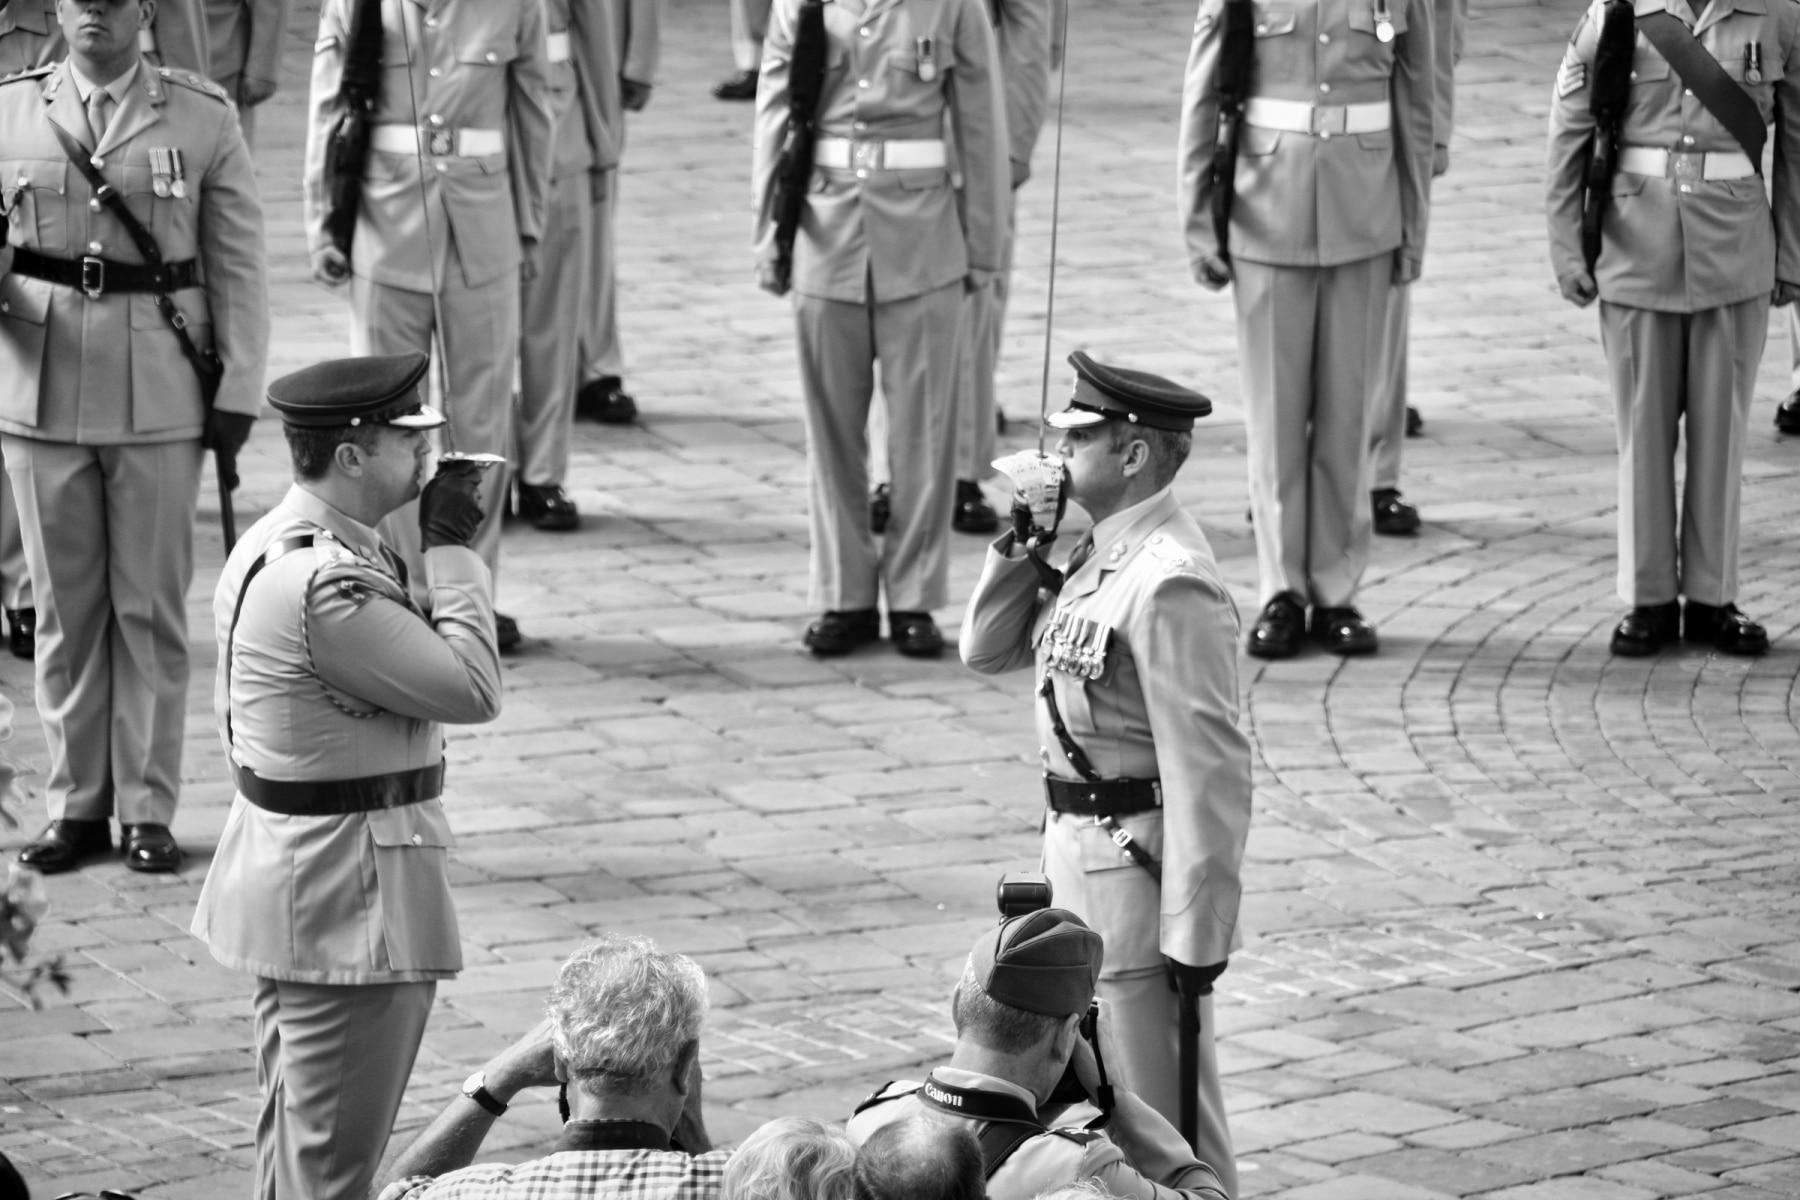 regiment-freedom-of-city-0253-bw_15253256860_o